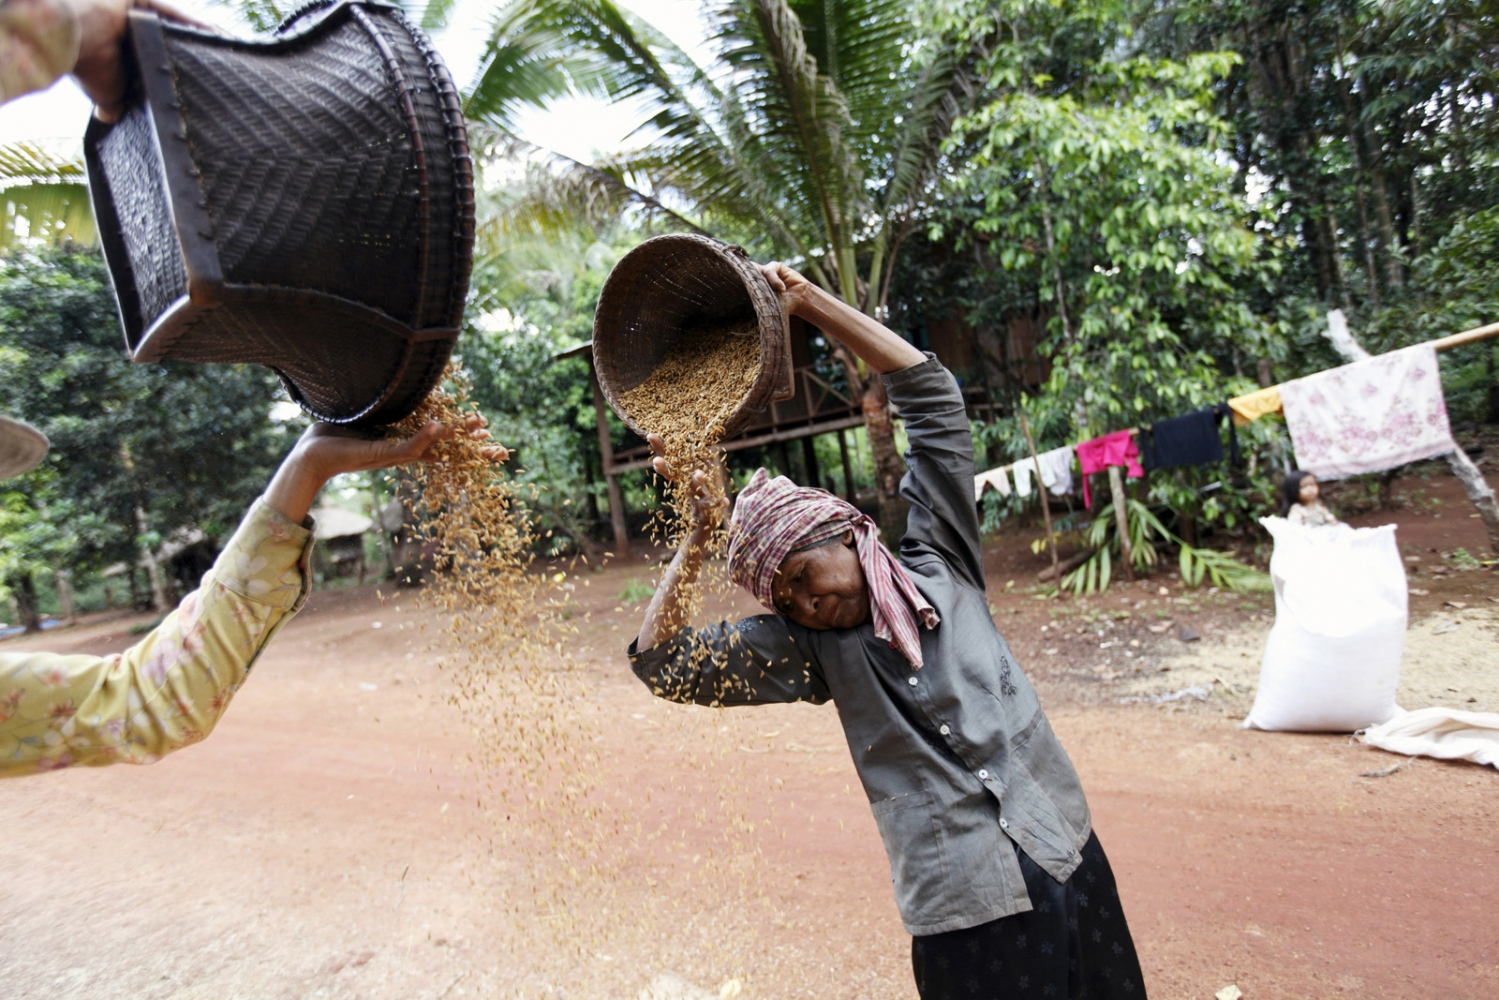 Local women clean rice by allowing the wind to blow away the husks in the Areng Valley of Koh Kong Province.